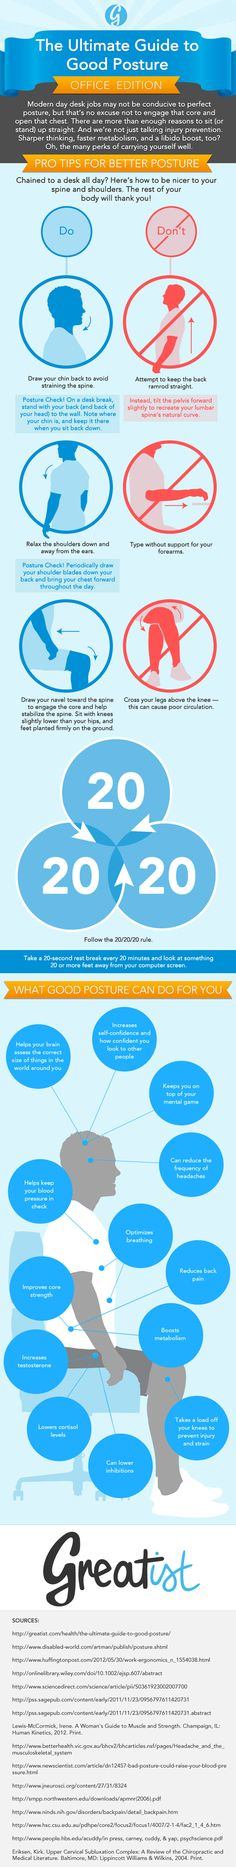 I feel good, you feel good. guia de boa postura no trabalho (Posture at Work) Infographic